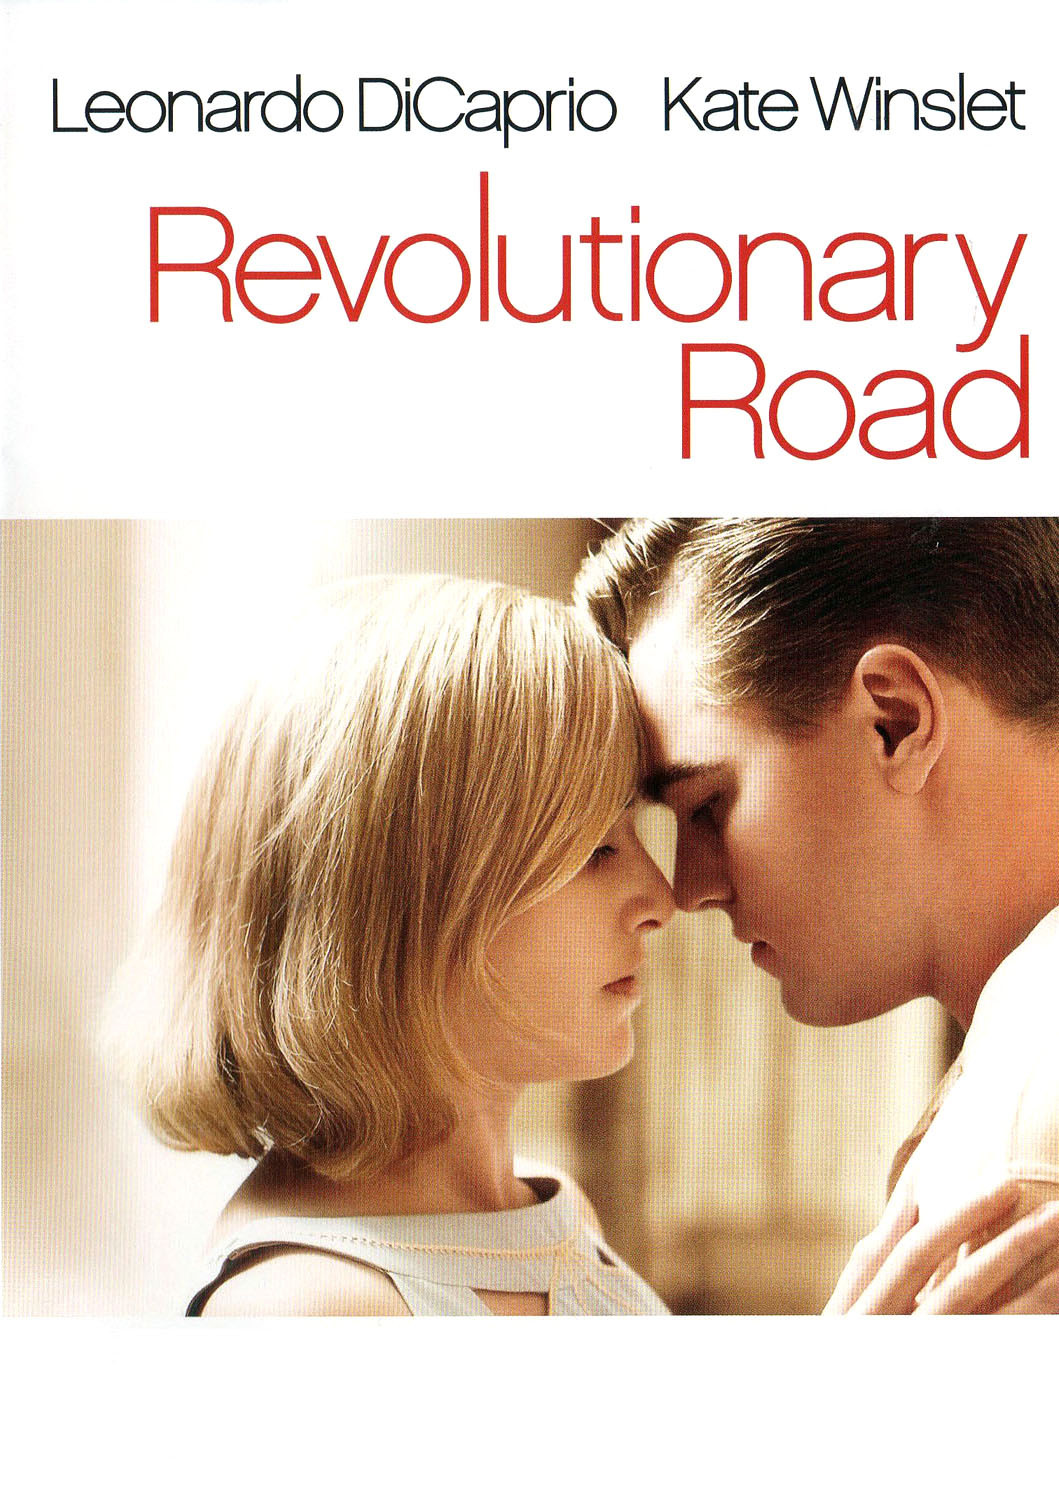 Poster of 'Revolutionary Road', which shows actors Leonardo Di Caprio and Kate Winslet leaning their heads against each other